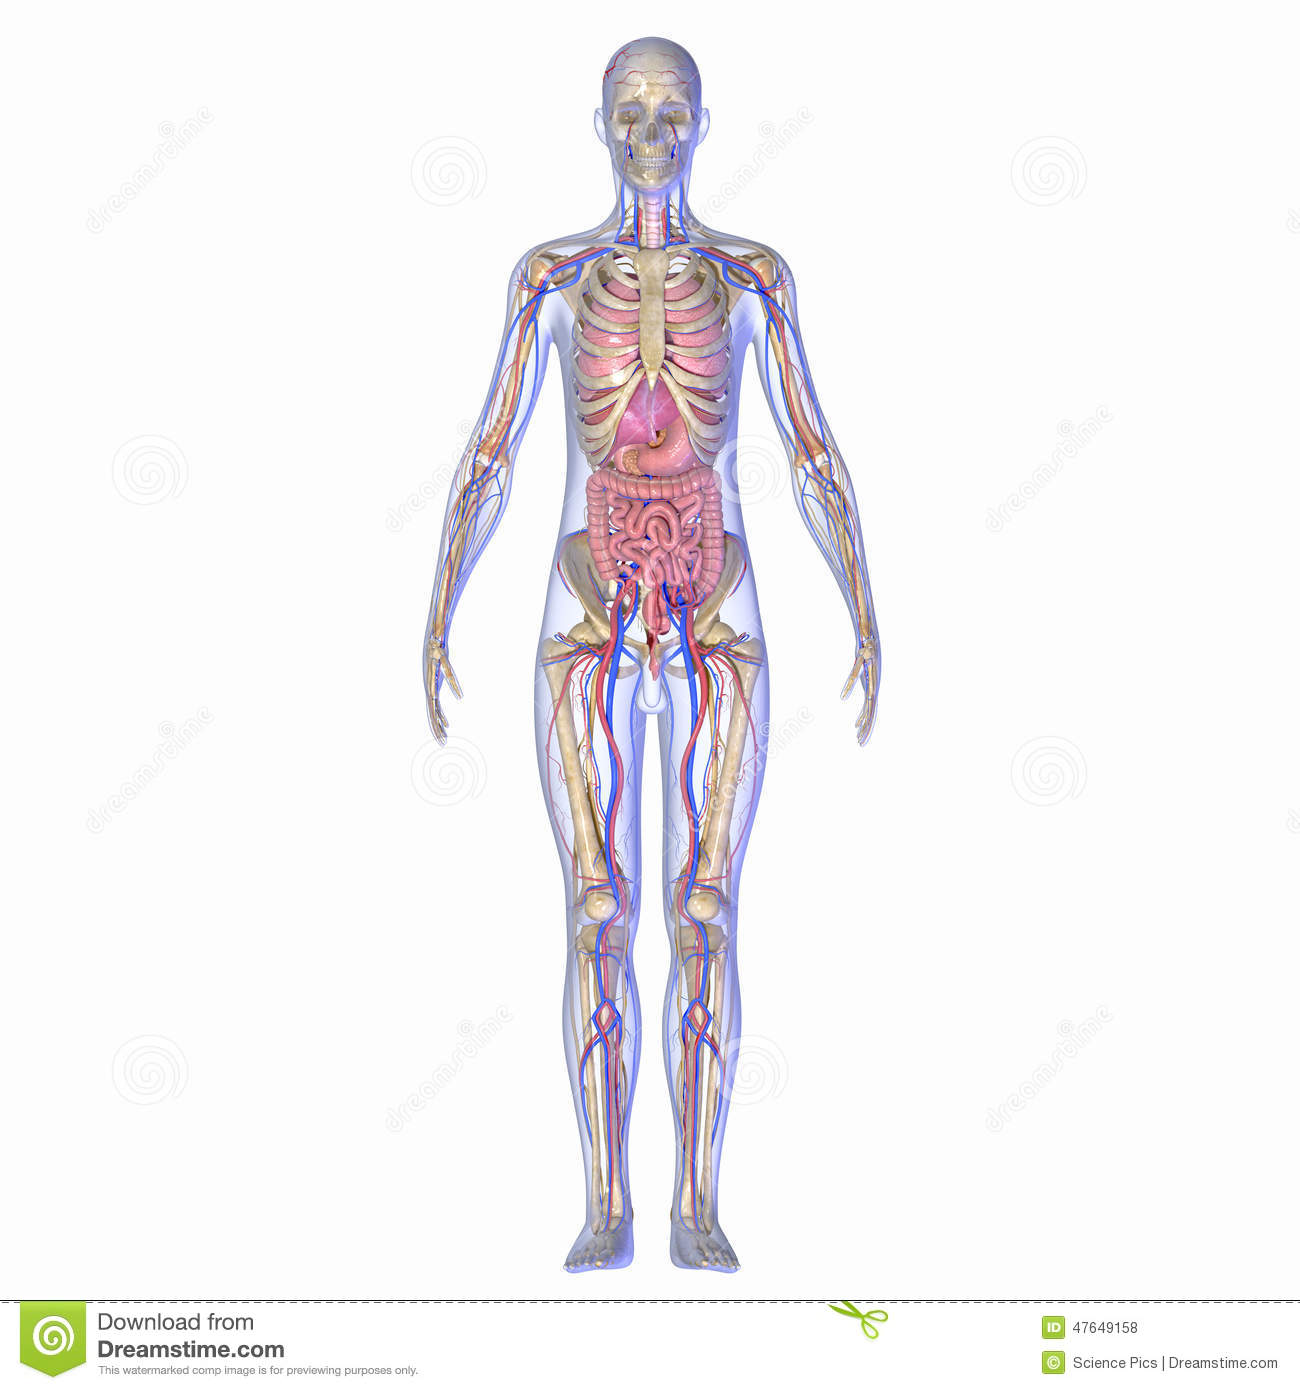 Human Anatomy stock illustration. Illustration of embryology - 47649158